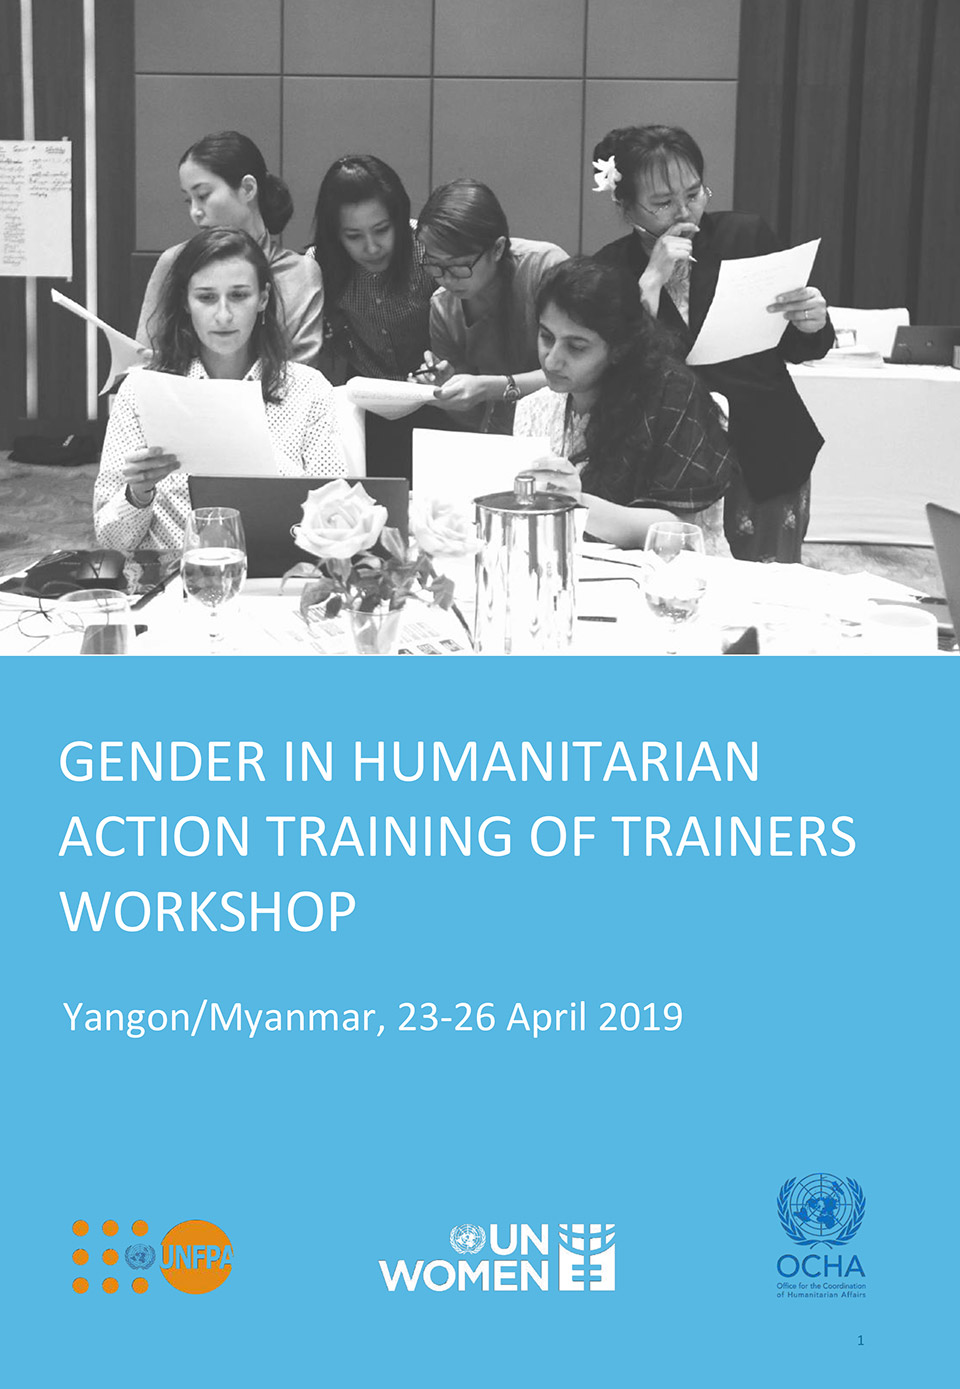 Gender in Humanitarian Action Training of Trainers Workshop